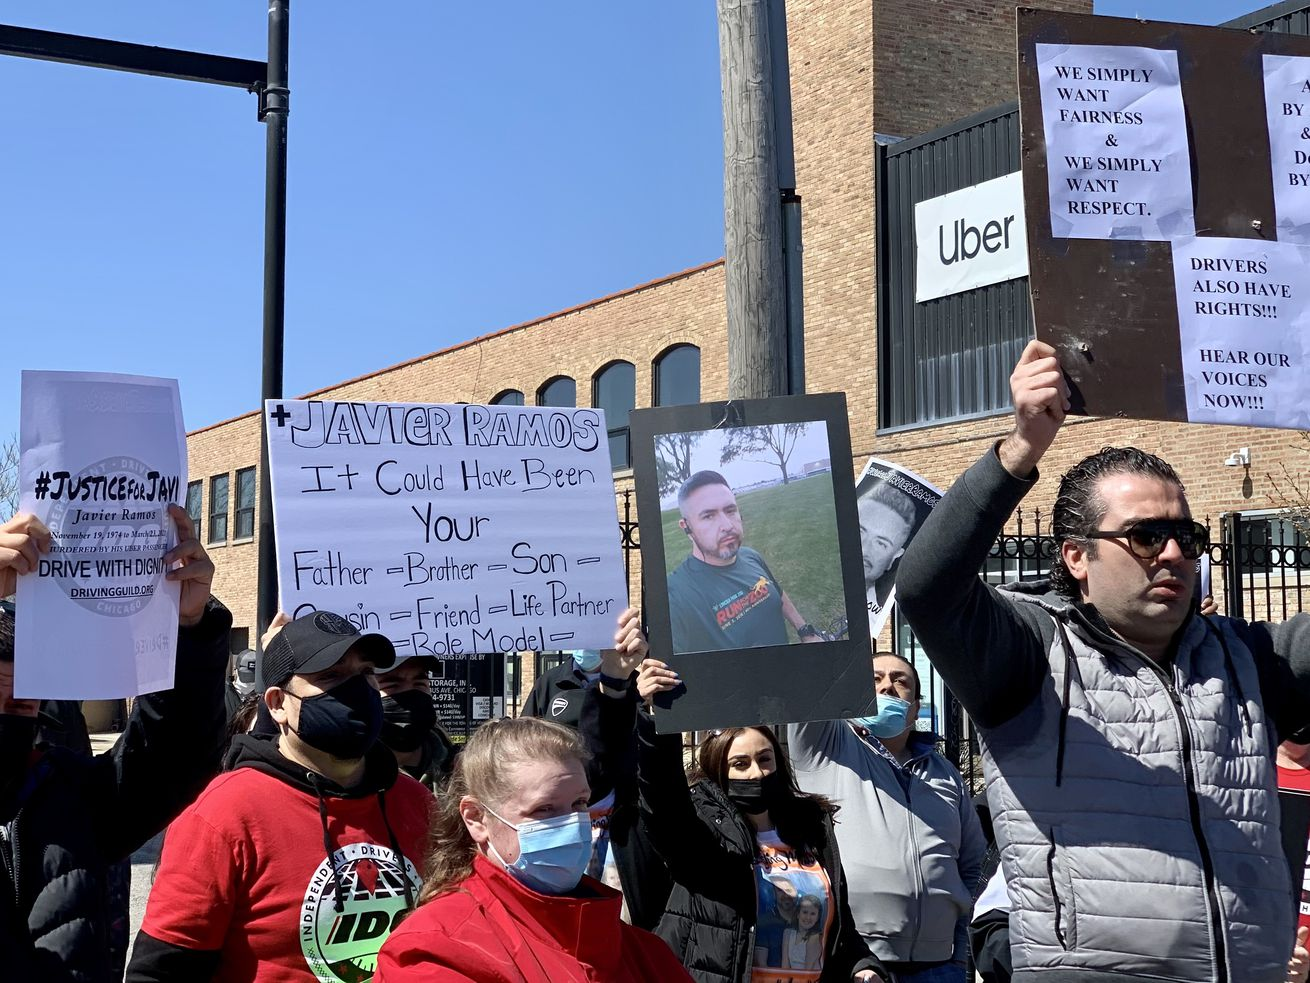 The Independent Drivers Guild Chicago gathered in protest, calling on Uber, Lyft and other ride share companies to do more to protect them.